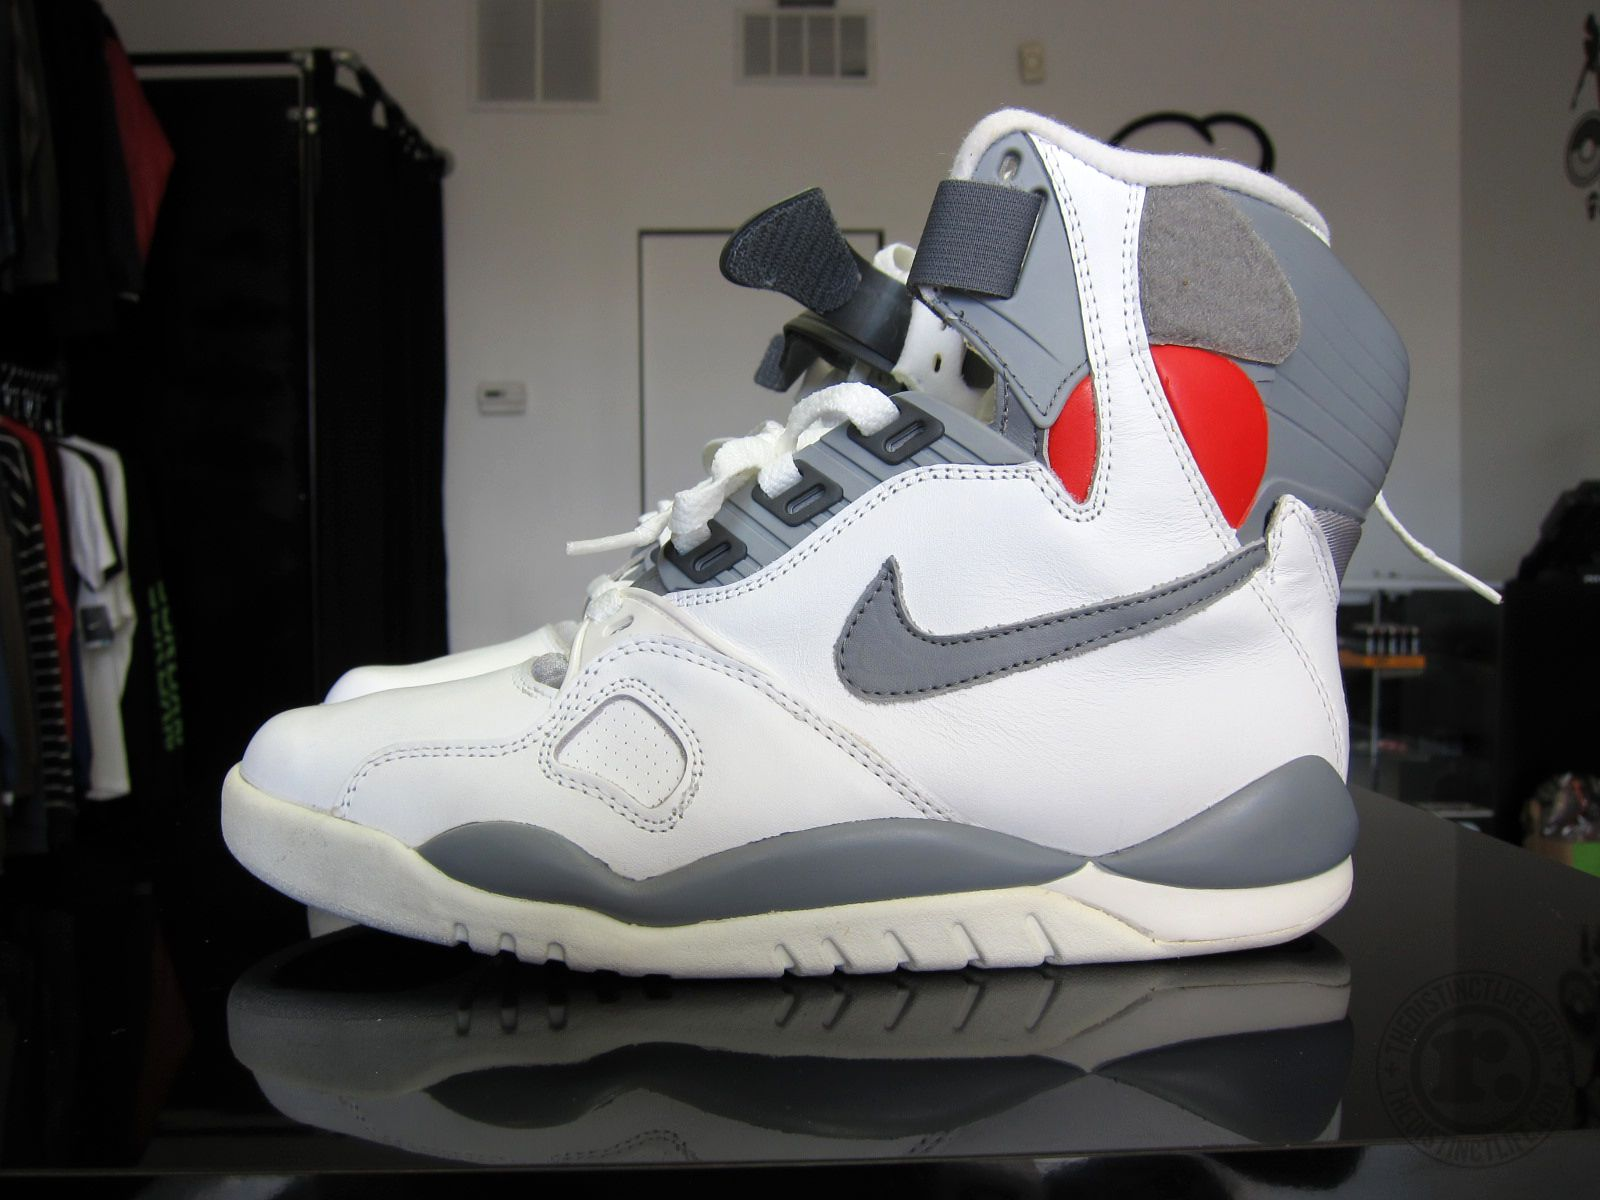 542f46988f10 Closest I could find to Marty McFly s Futuristic Nikes! Blast from the past!